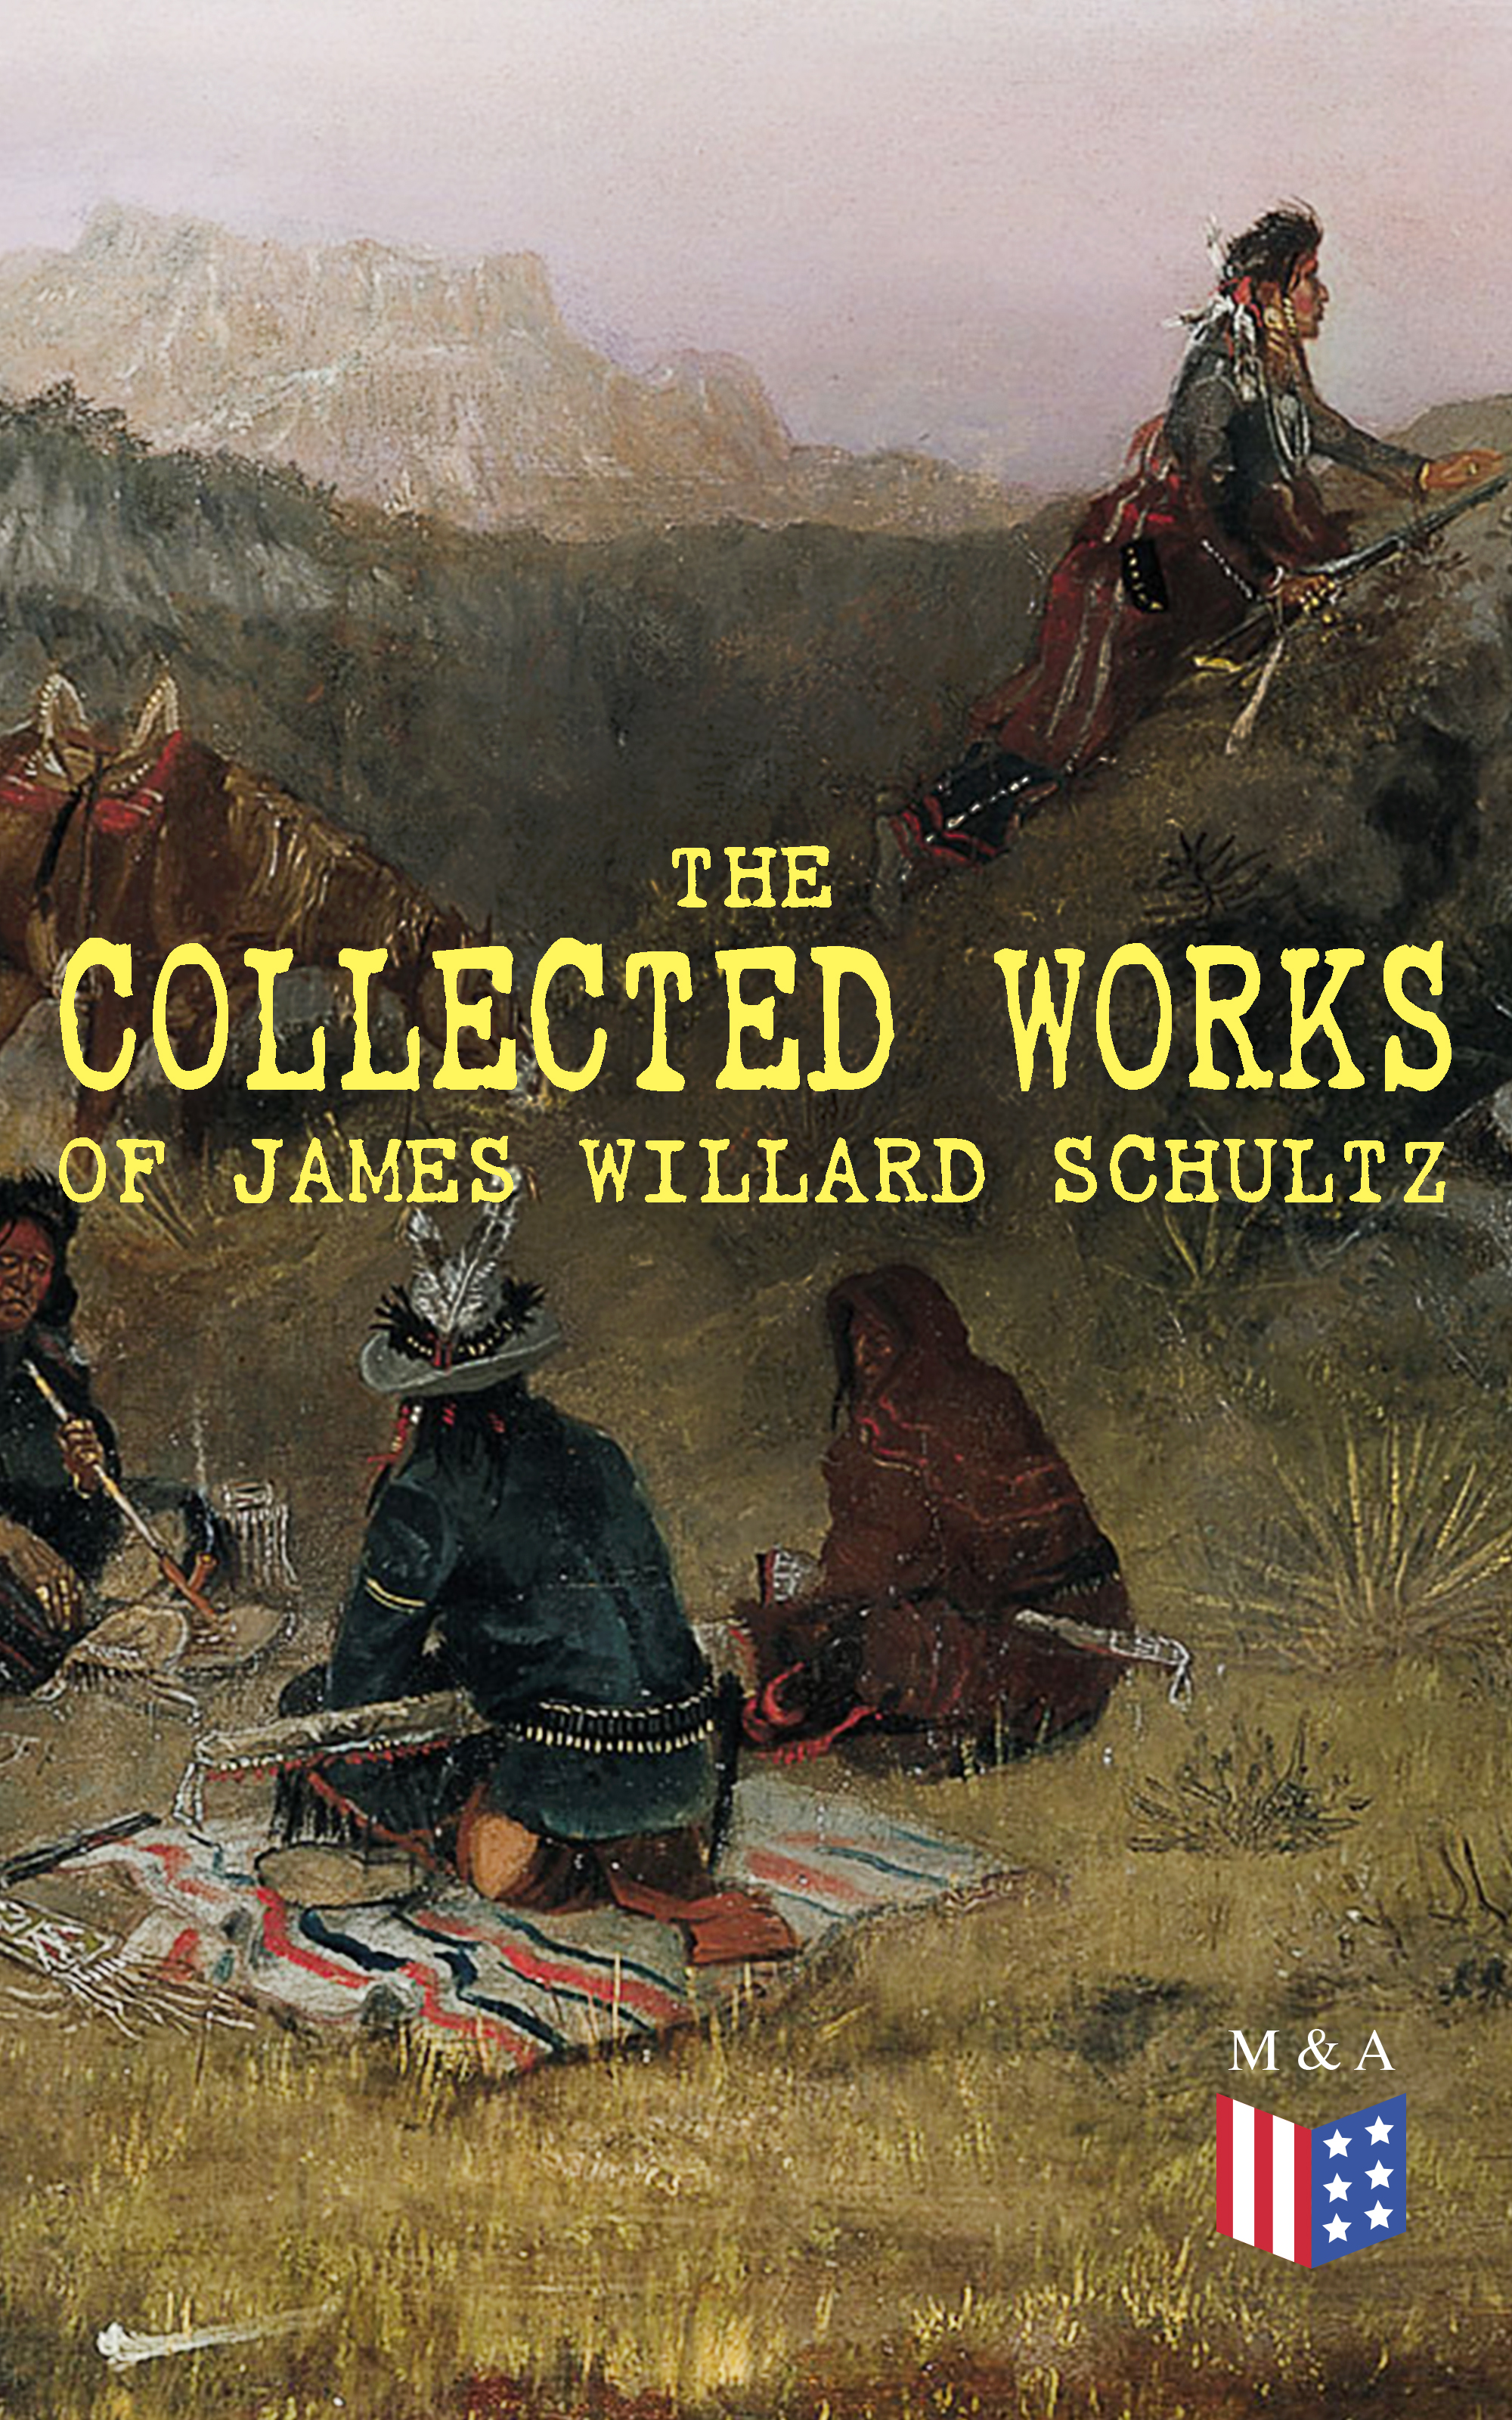 James Willard Schultz The Collected Works of James Willard Schultz willard daniel johnson outlines of the history of education